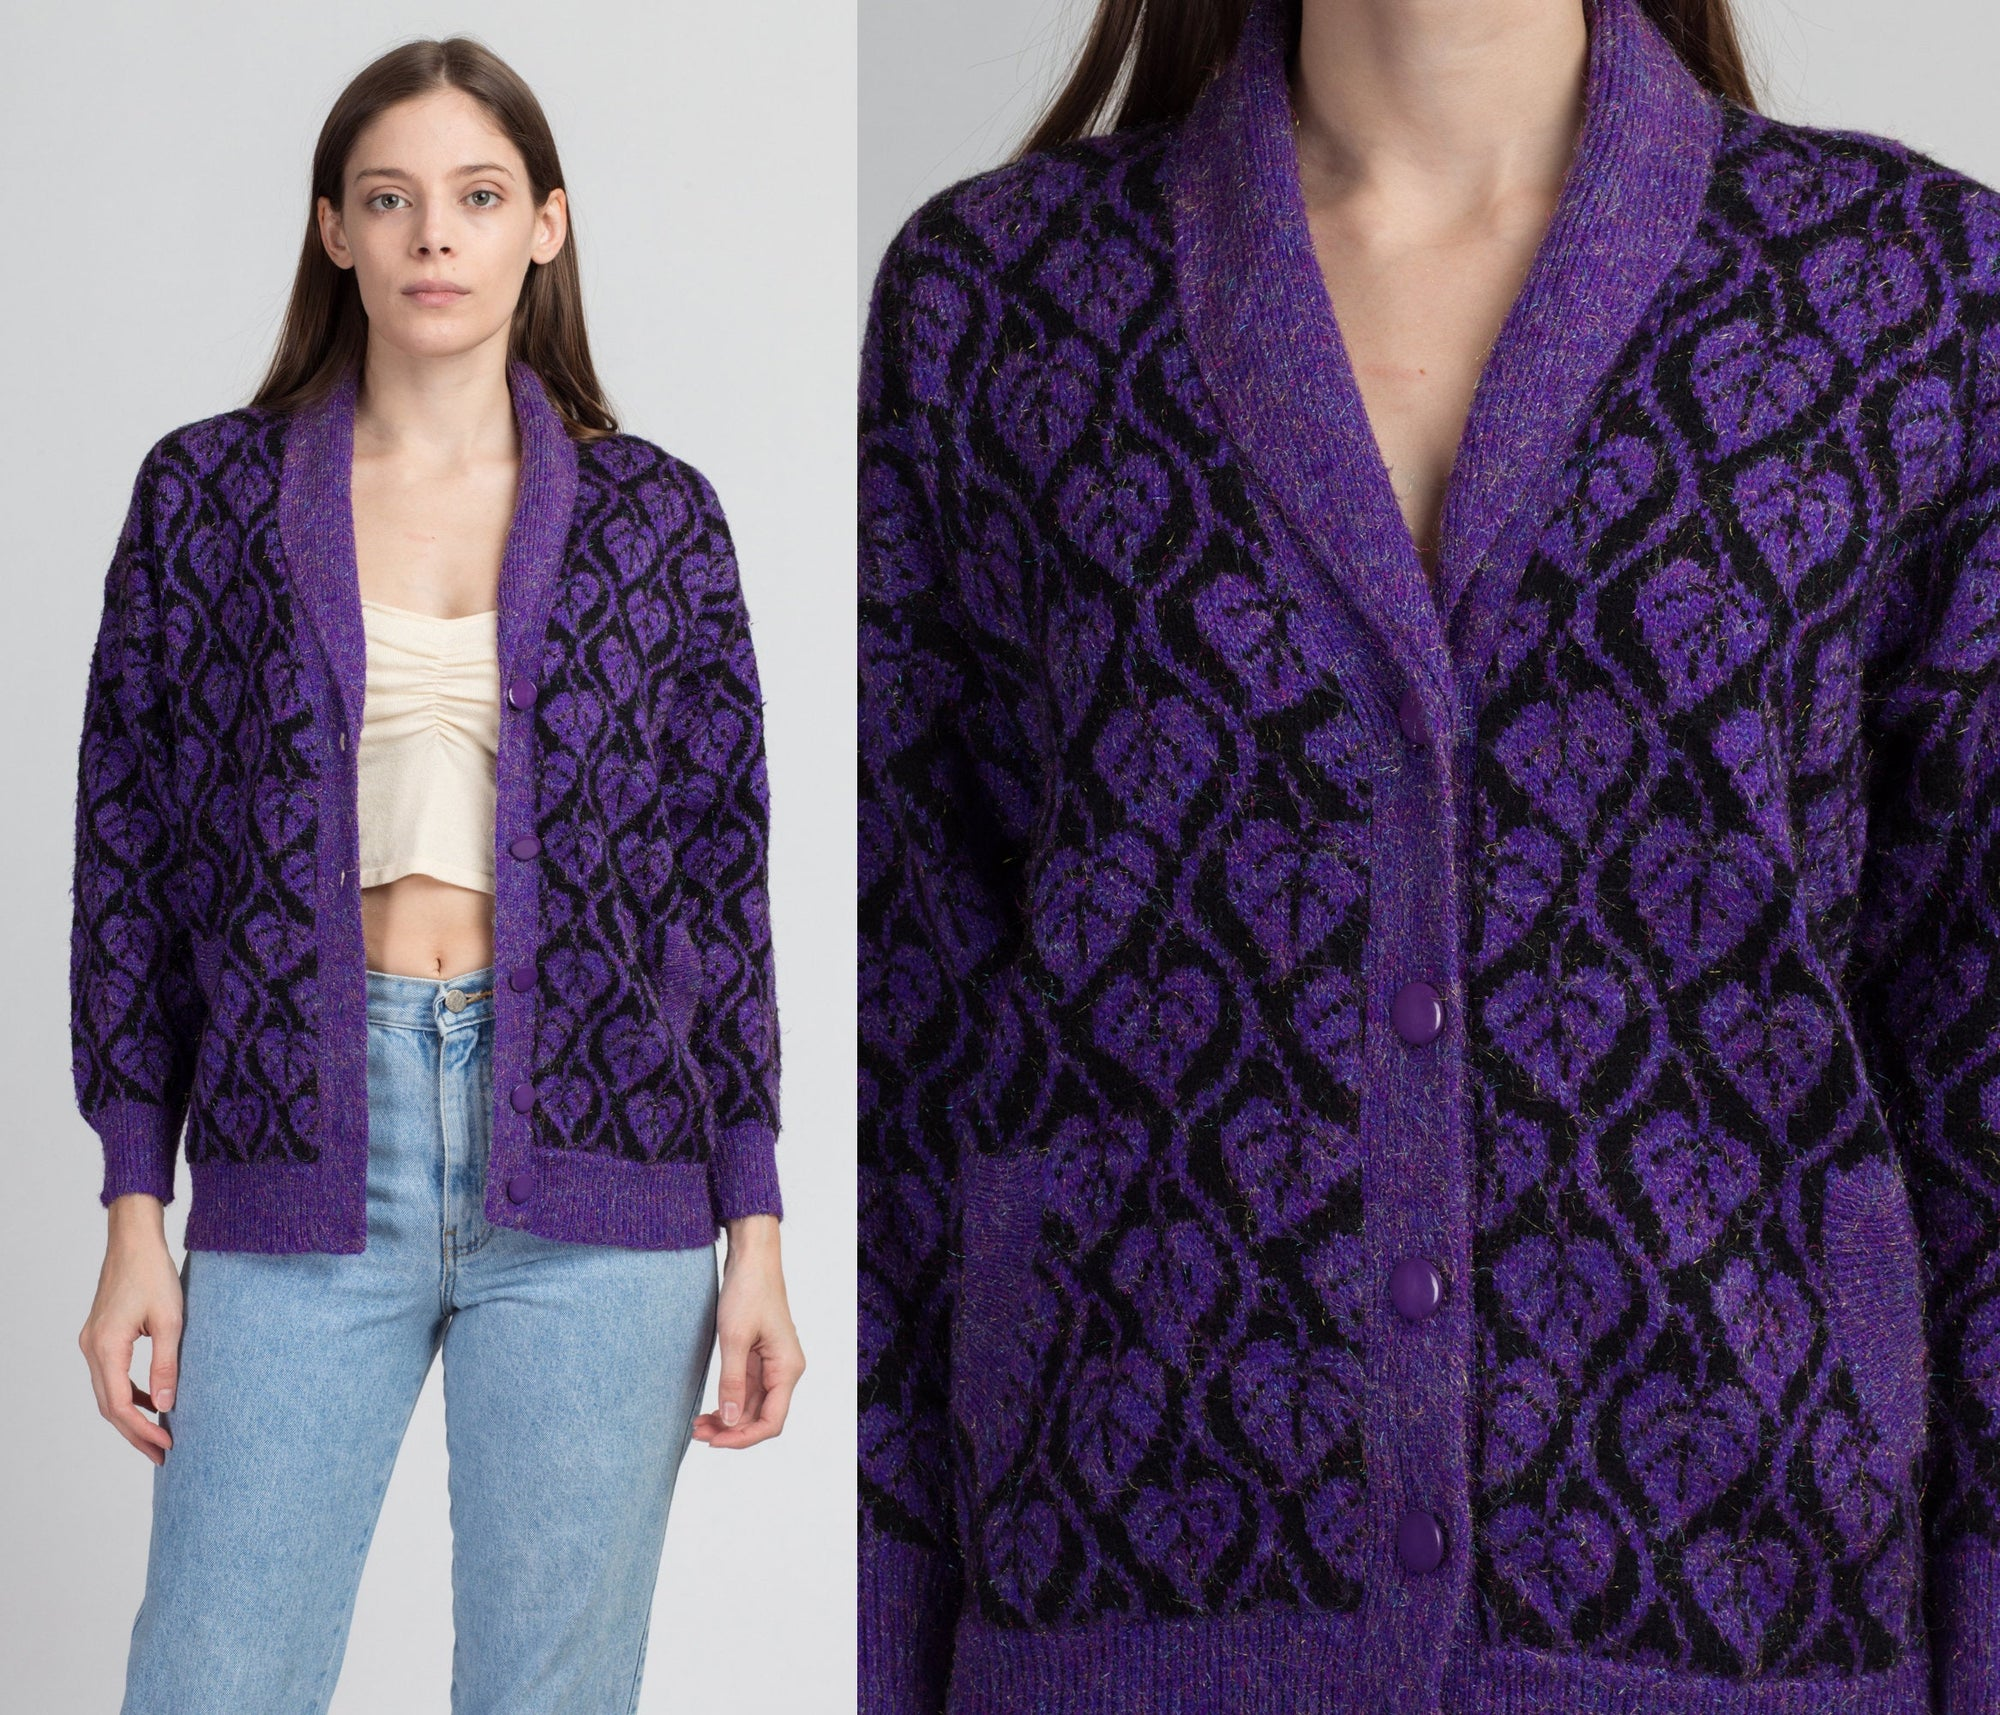 80s Black & Purple Metallic Leaf Pattern Cardigan - Small